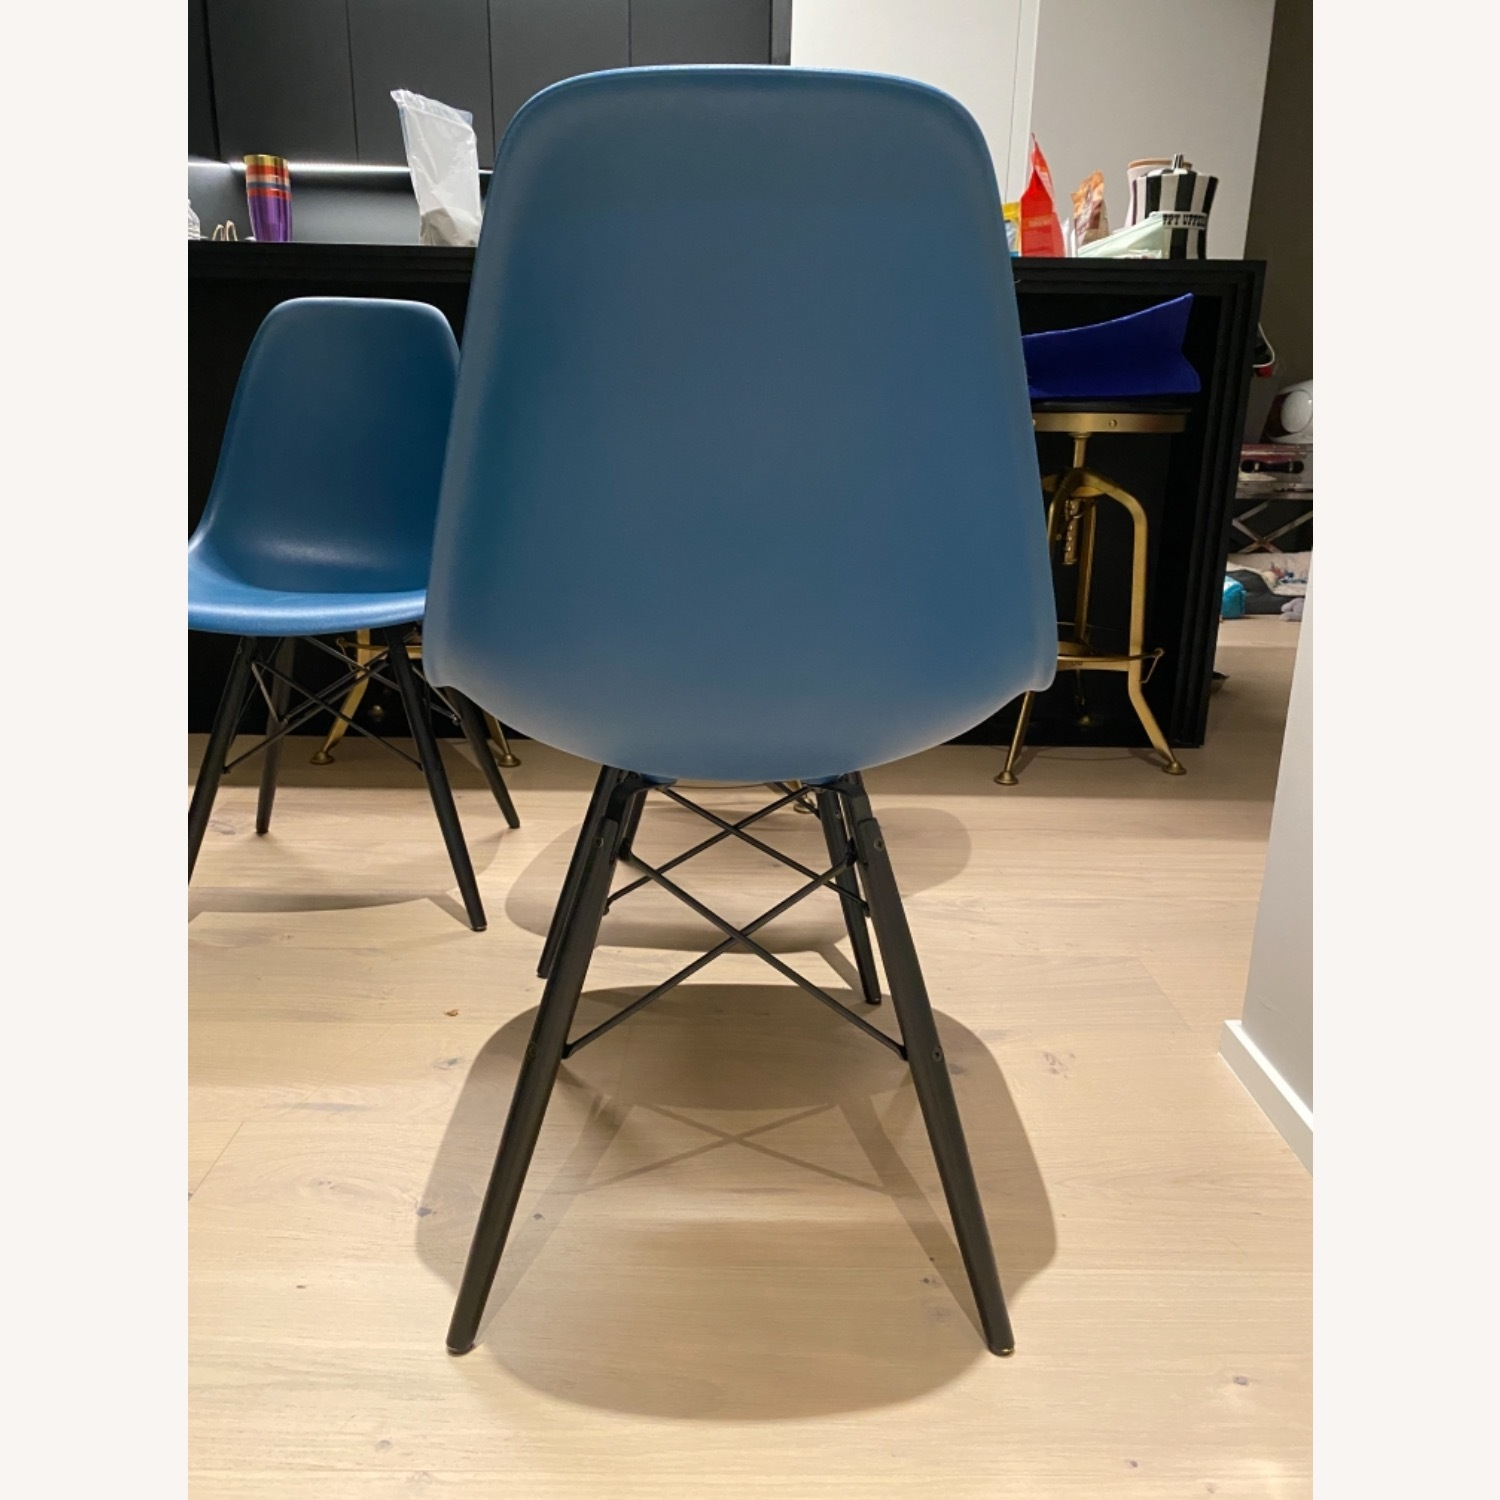 4 x Herman Miller Eames Molded Plastic Side Chair - image-12